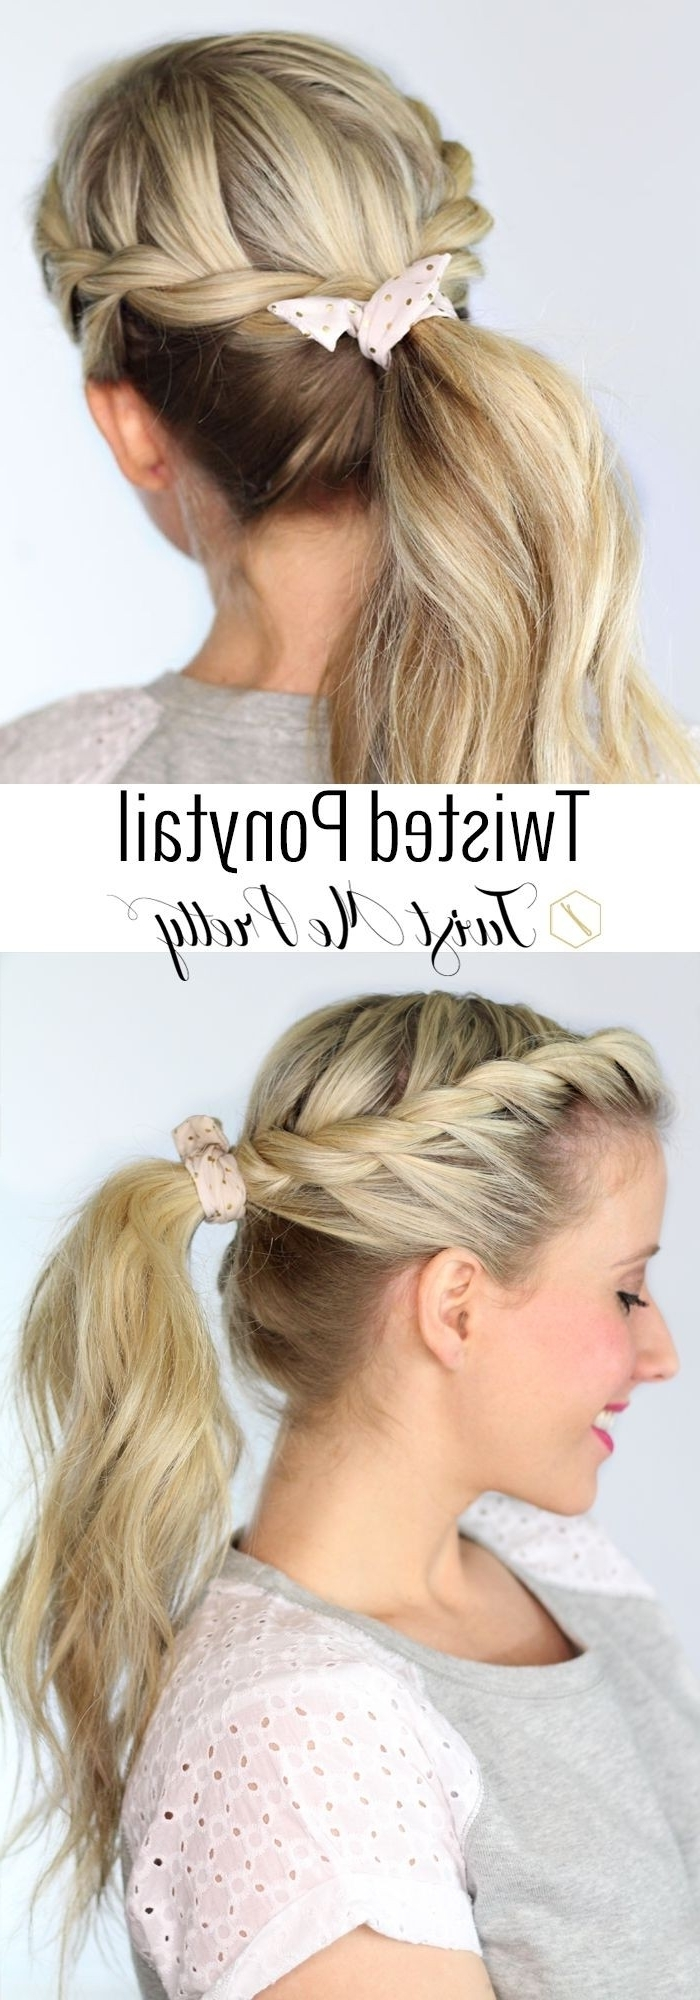 Recent High Messy Pony Hairstyles With Long Bangs Pertaining To 10 Cute Ponytail Ideas: Summer And Fall Hairstyles For Long Hair (Gallery 8 of 20)